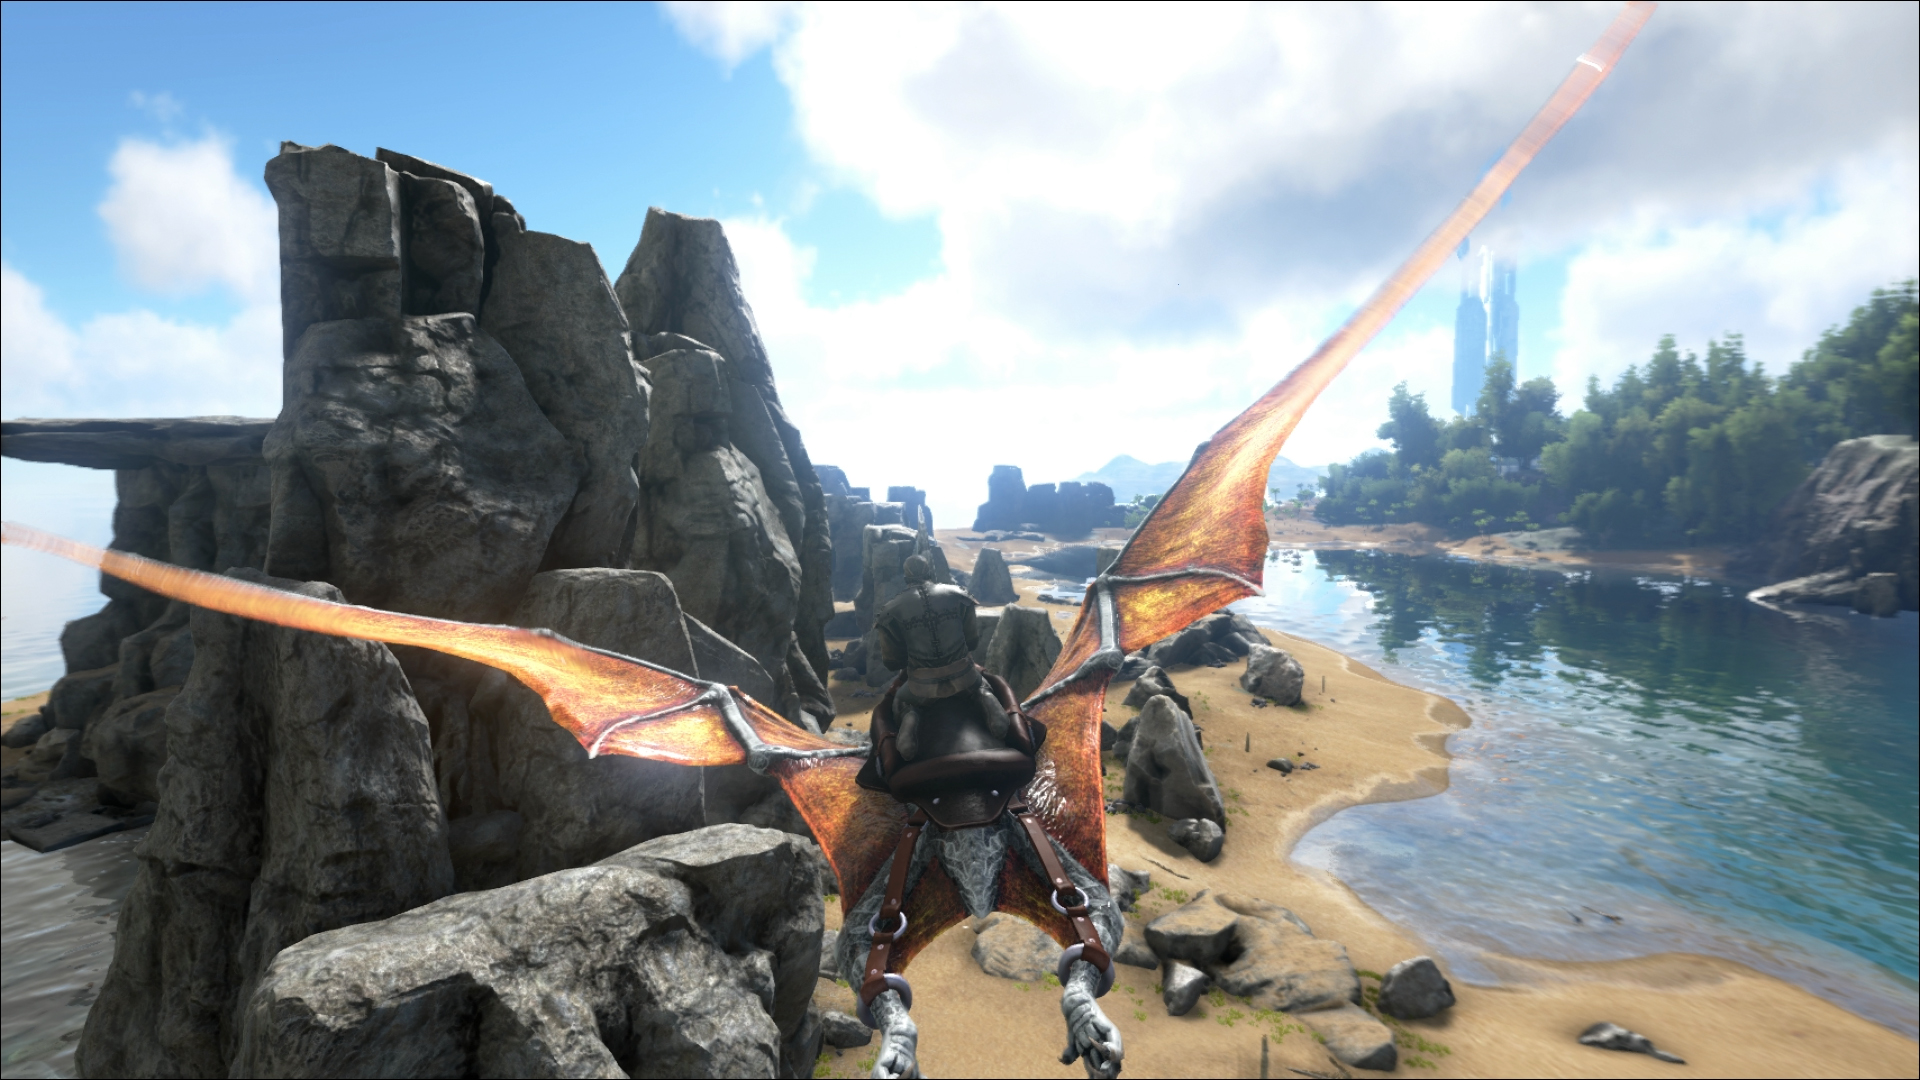 VRゲームARK: Survival Evolved,,イメージ